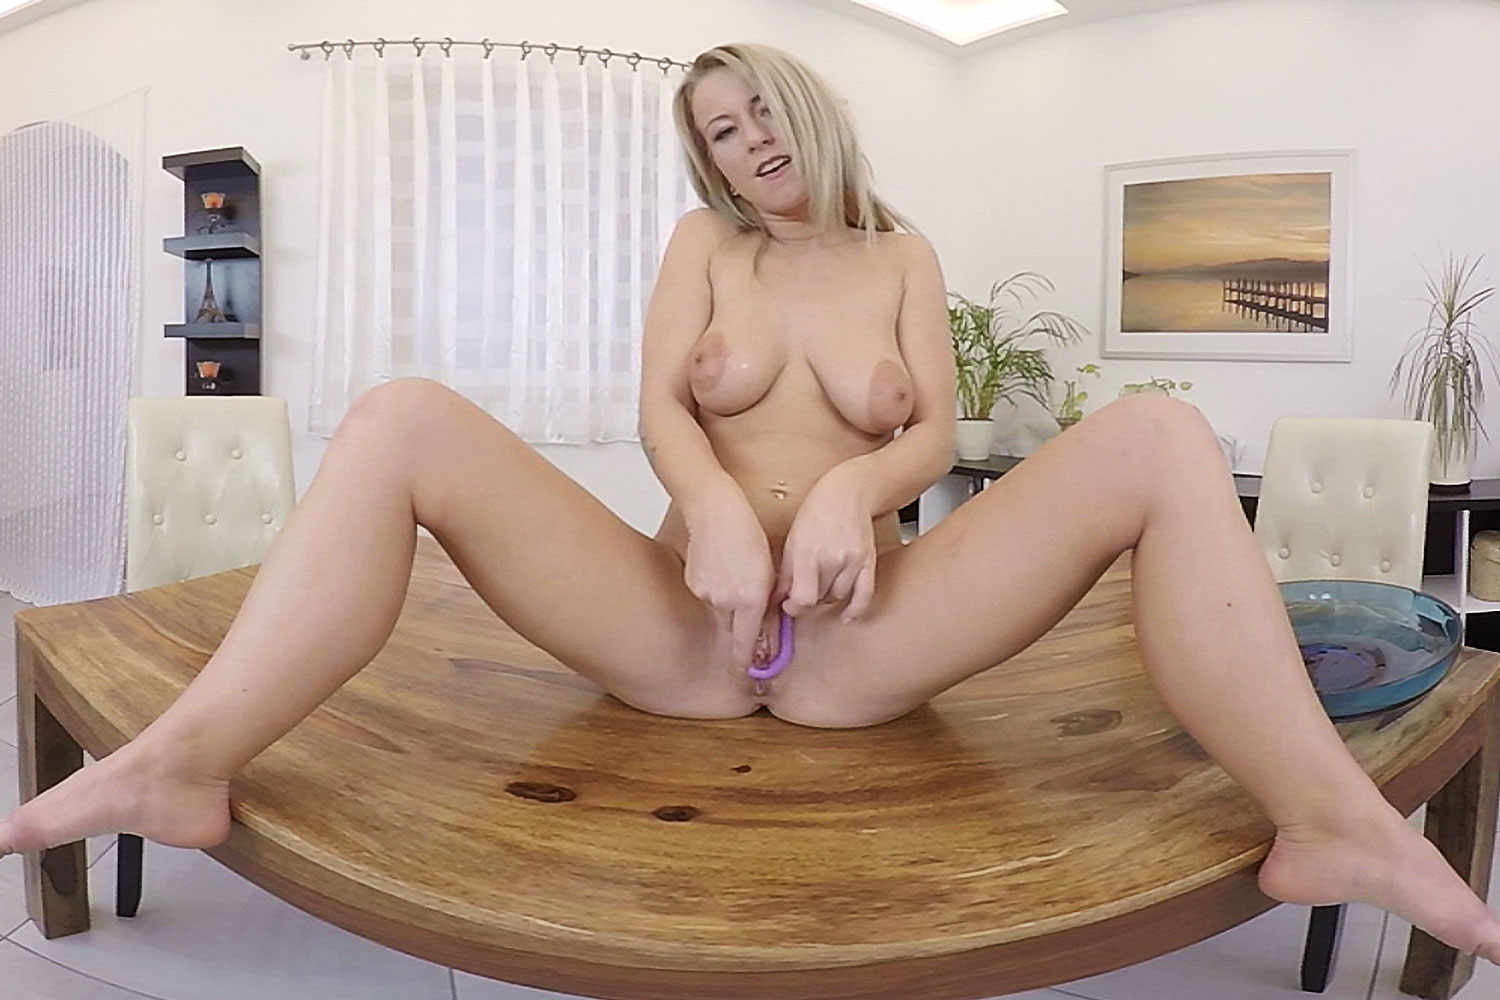 Tasting Those Juices VR Porn Video